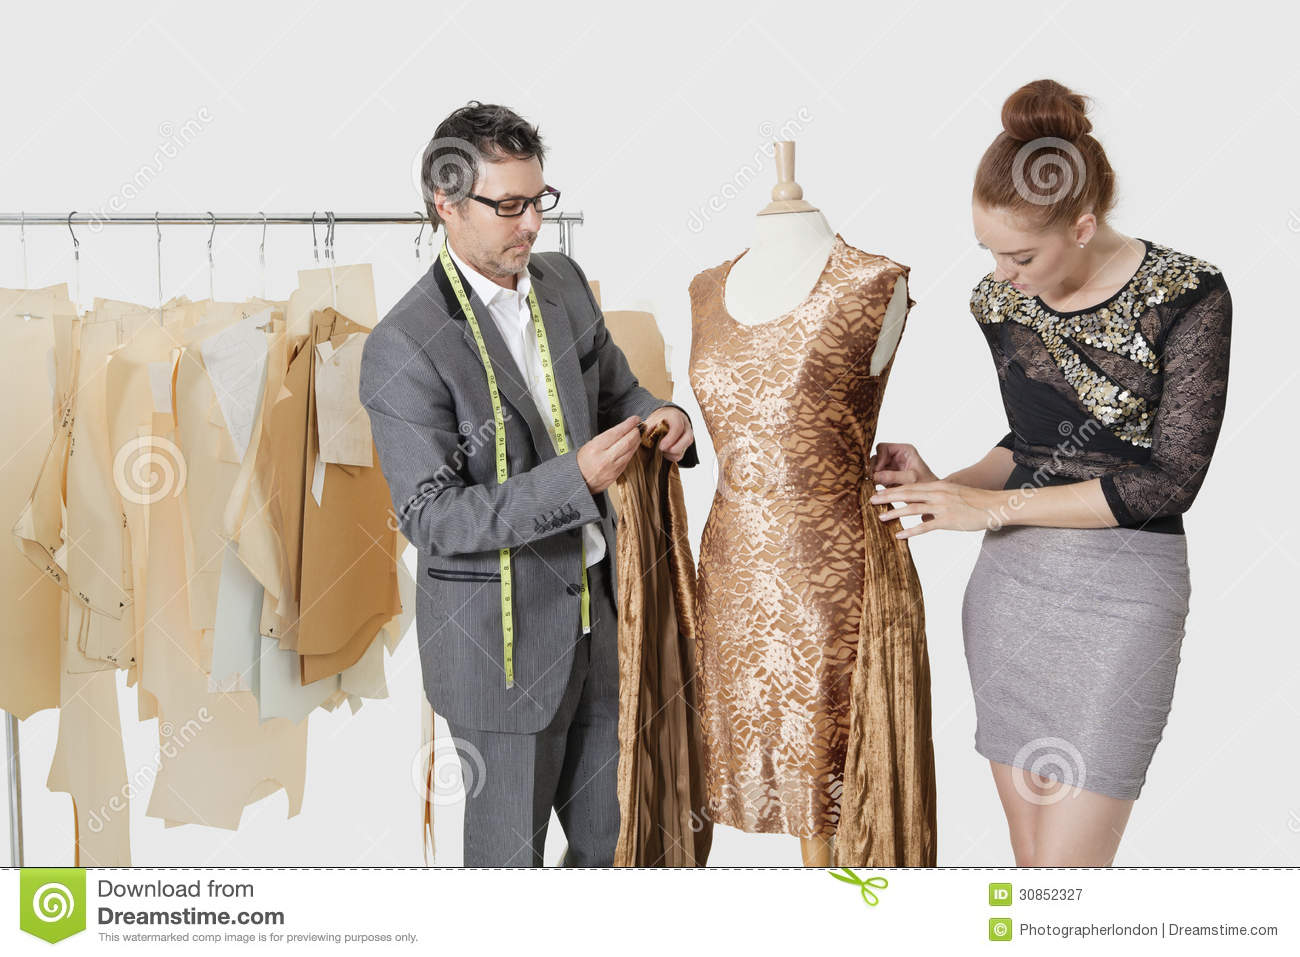 Fashion designers working together on an outfit in design Contemporary fashion designers